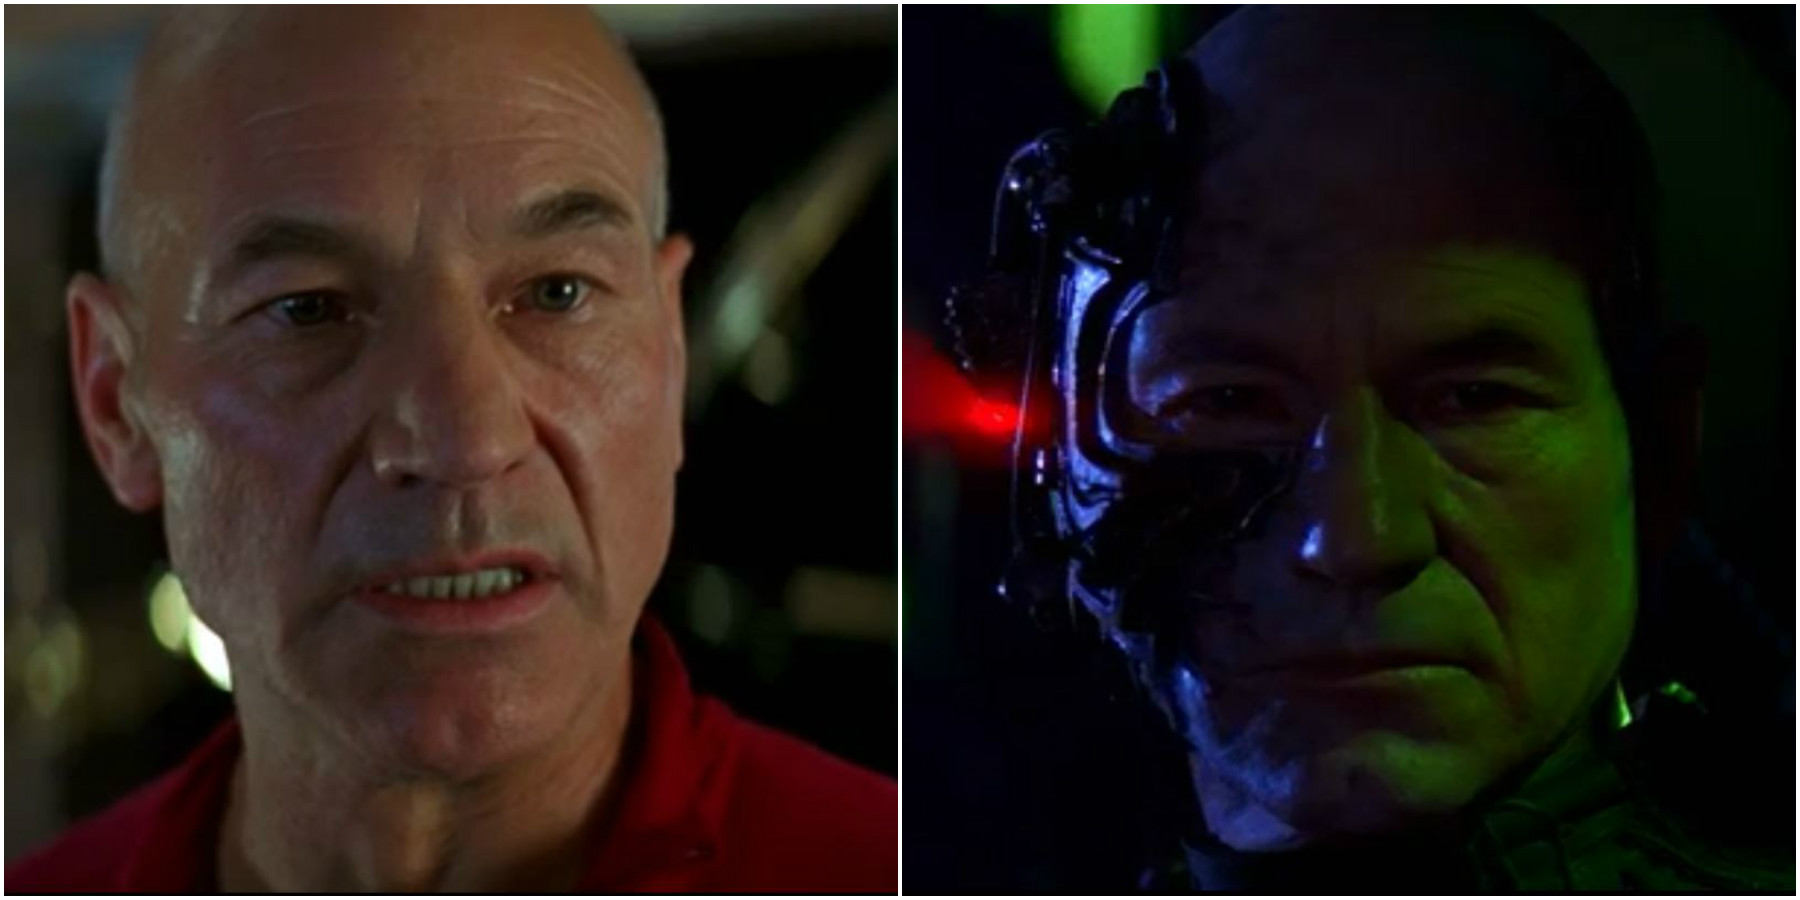 Picard WTF Feature Star Trek: 15 Most Inappropriate Things Captain Picard Has Done